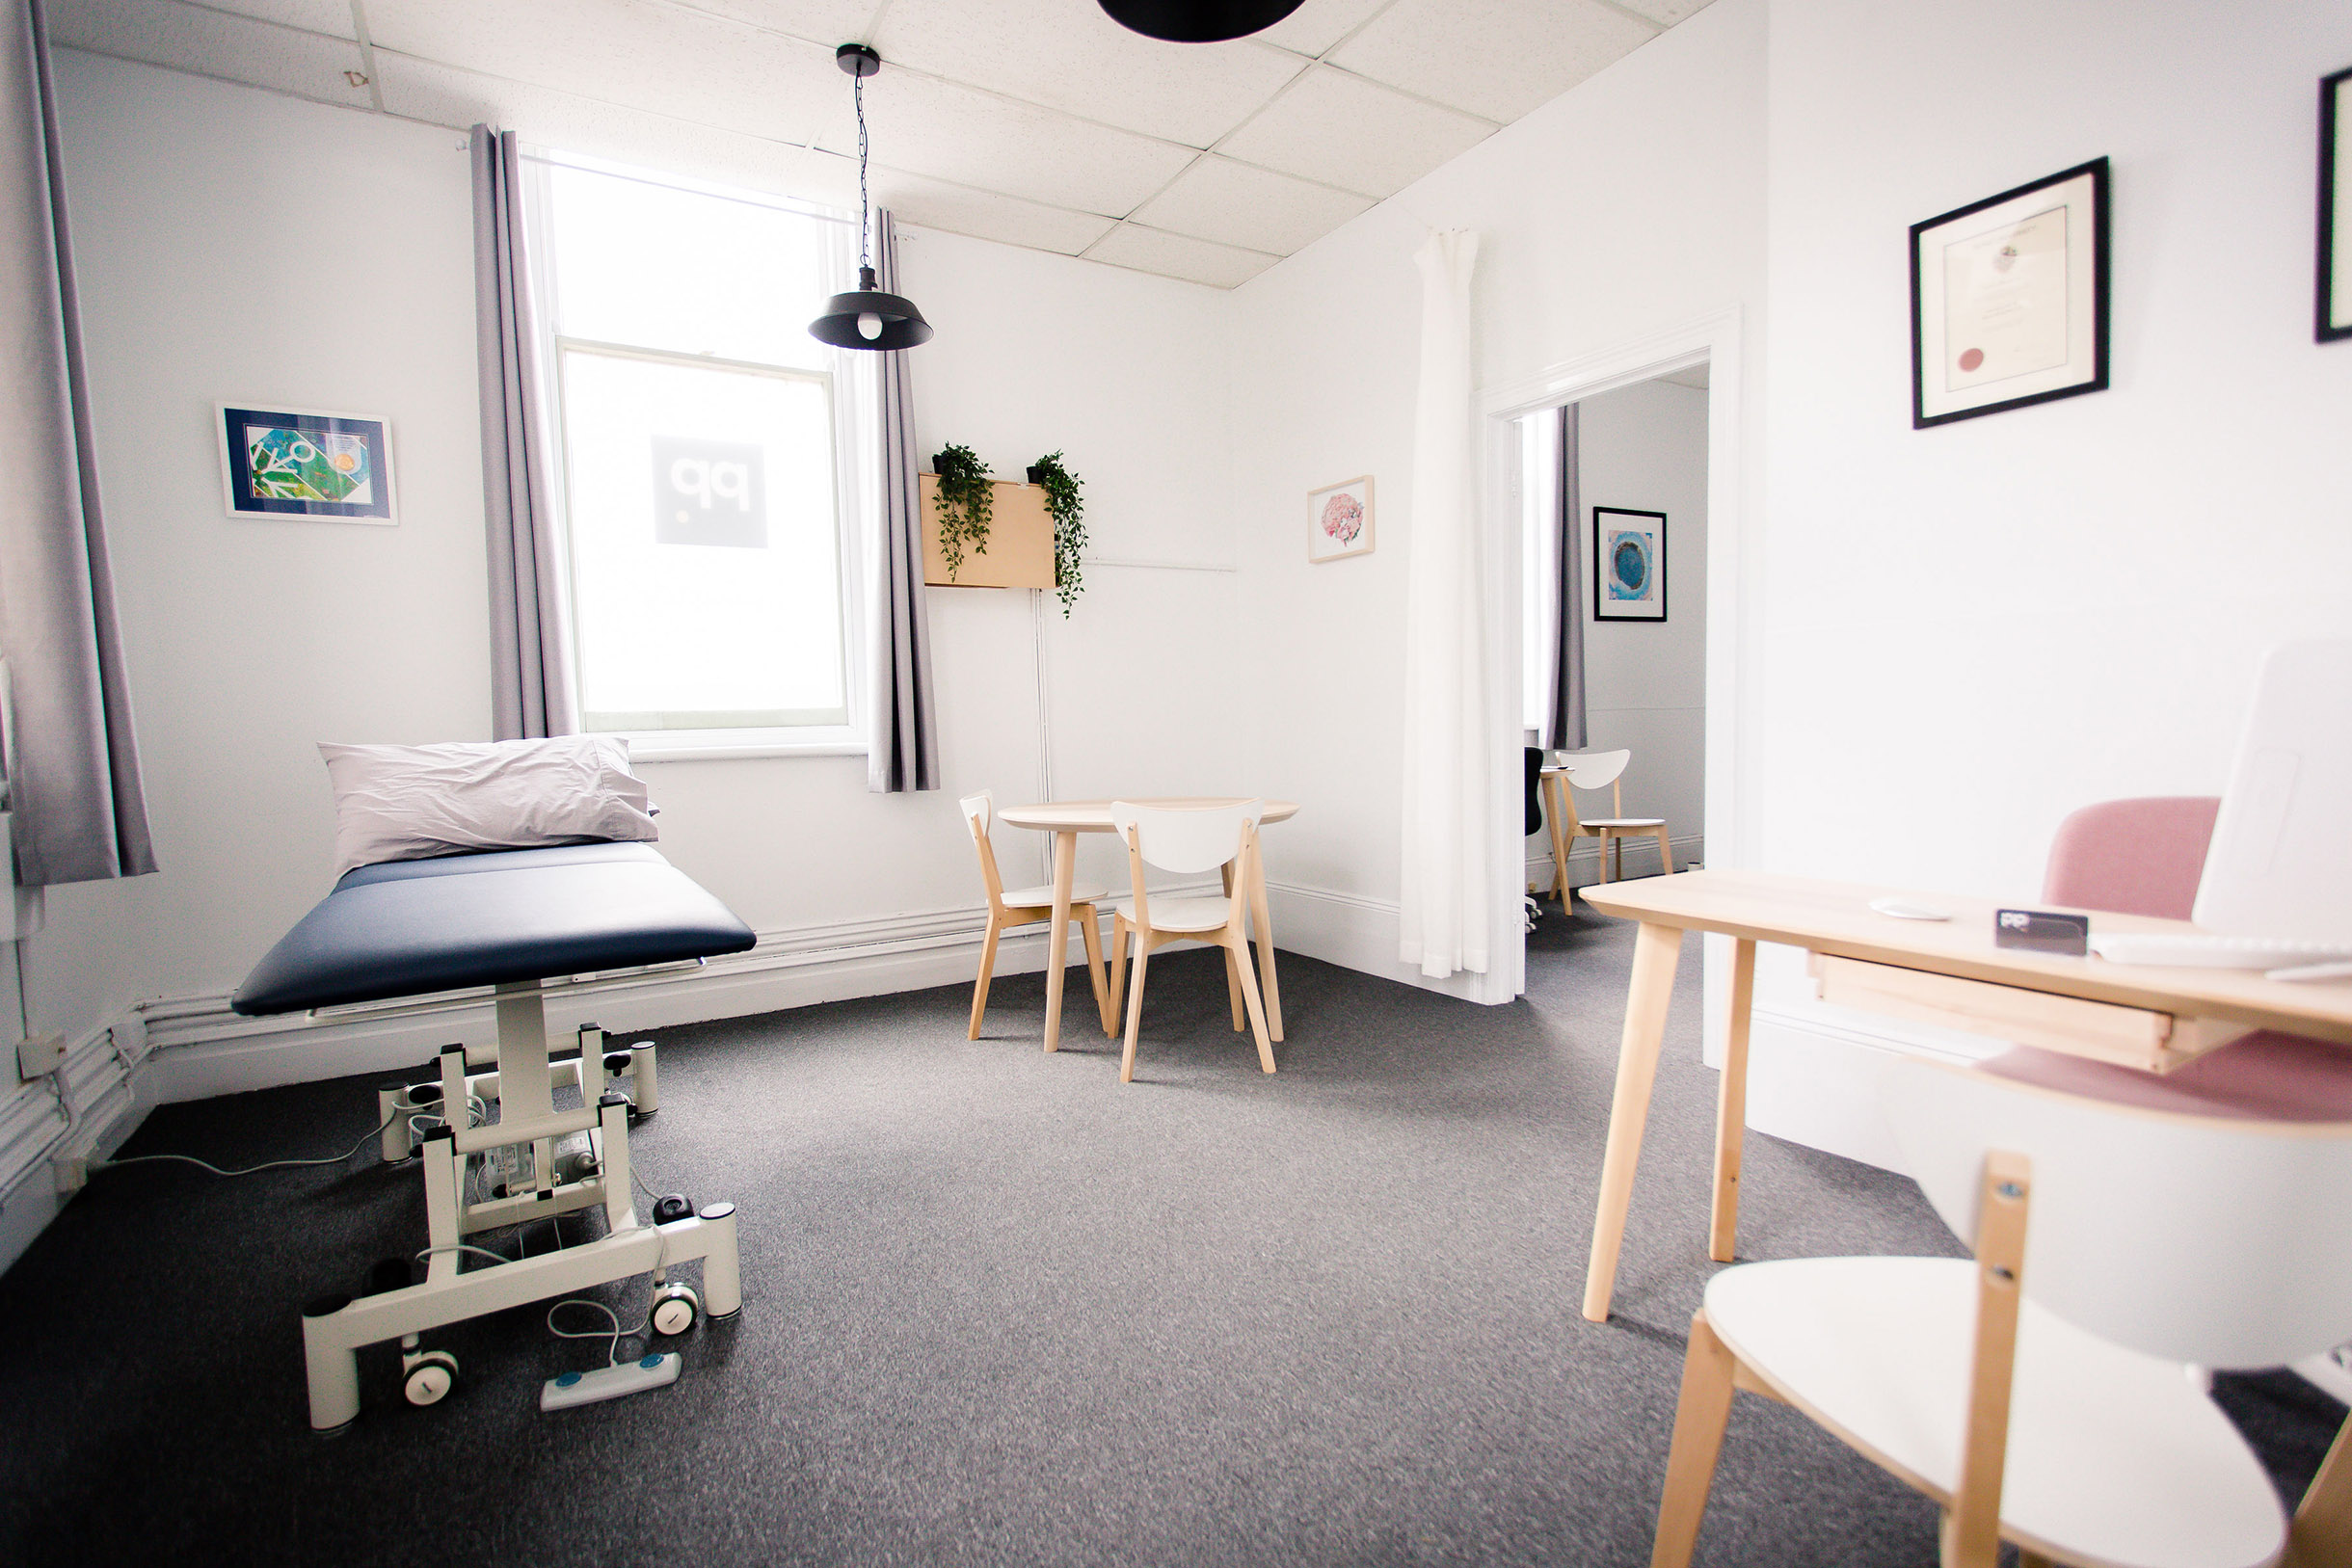 Geelong Physiotherapy treatment rooms